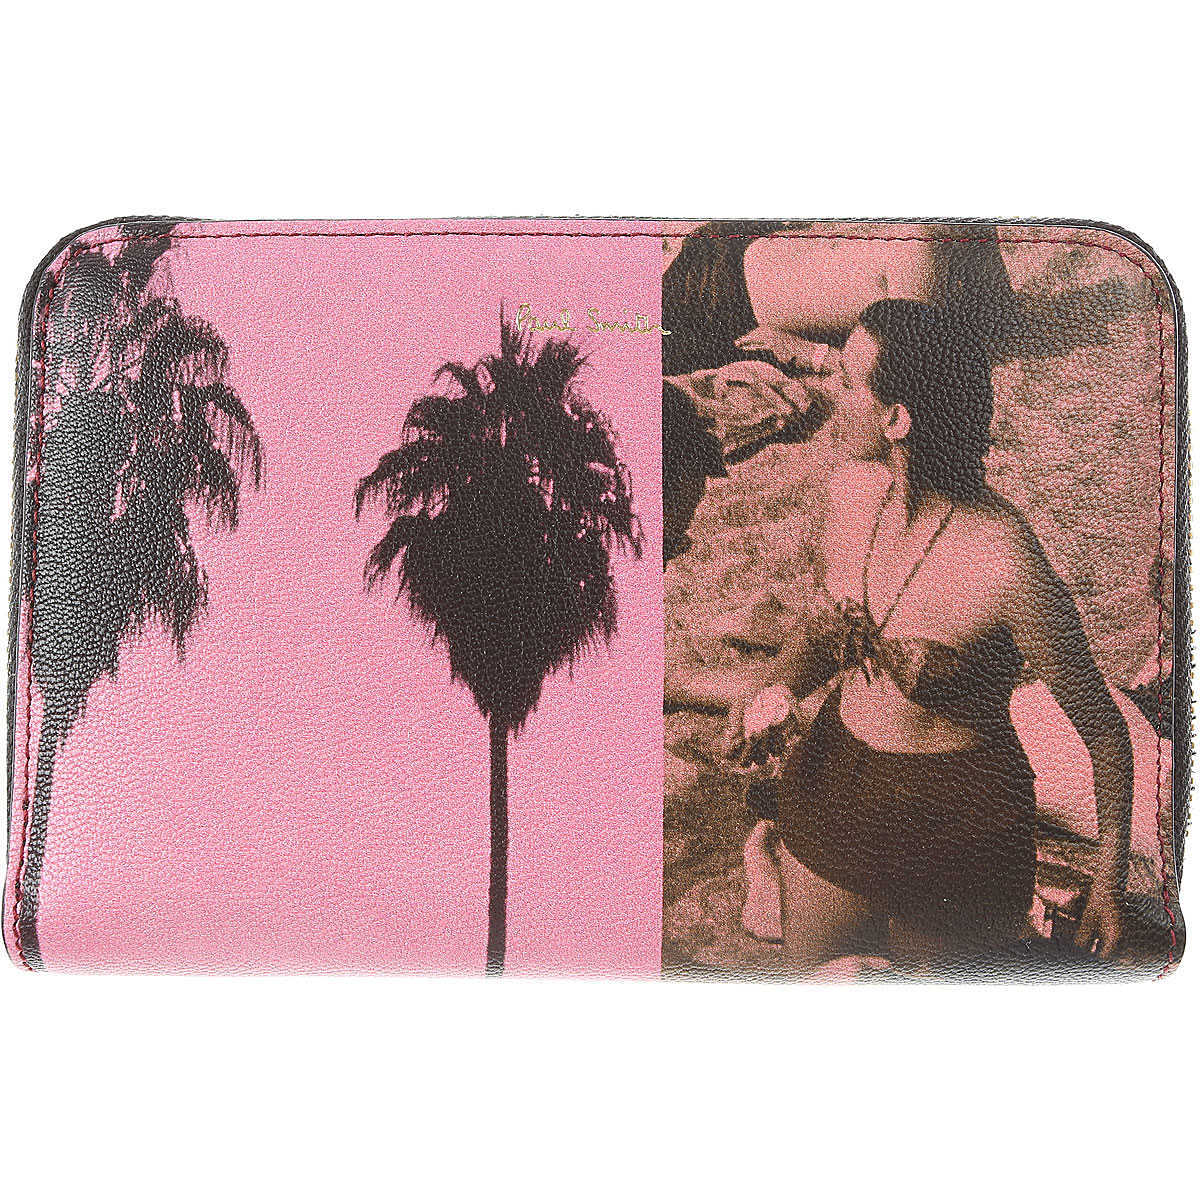 Paul Smith Wallet for Women Pink Canada - GOOFASH - Womens WALLETS